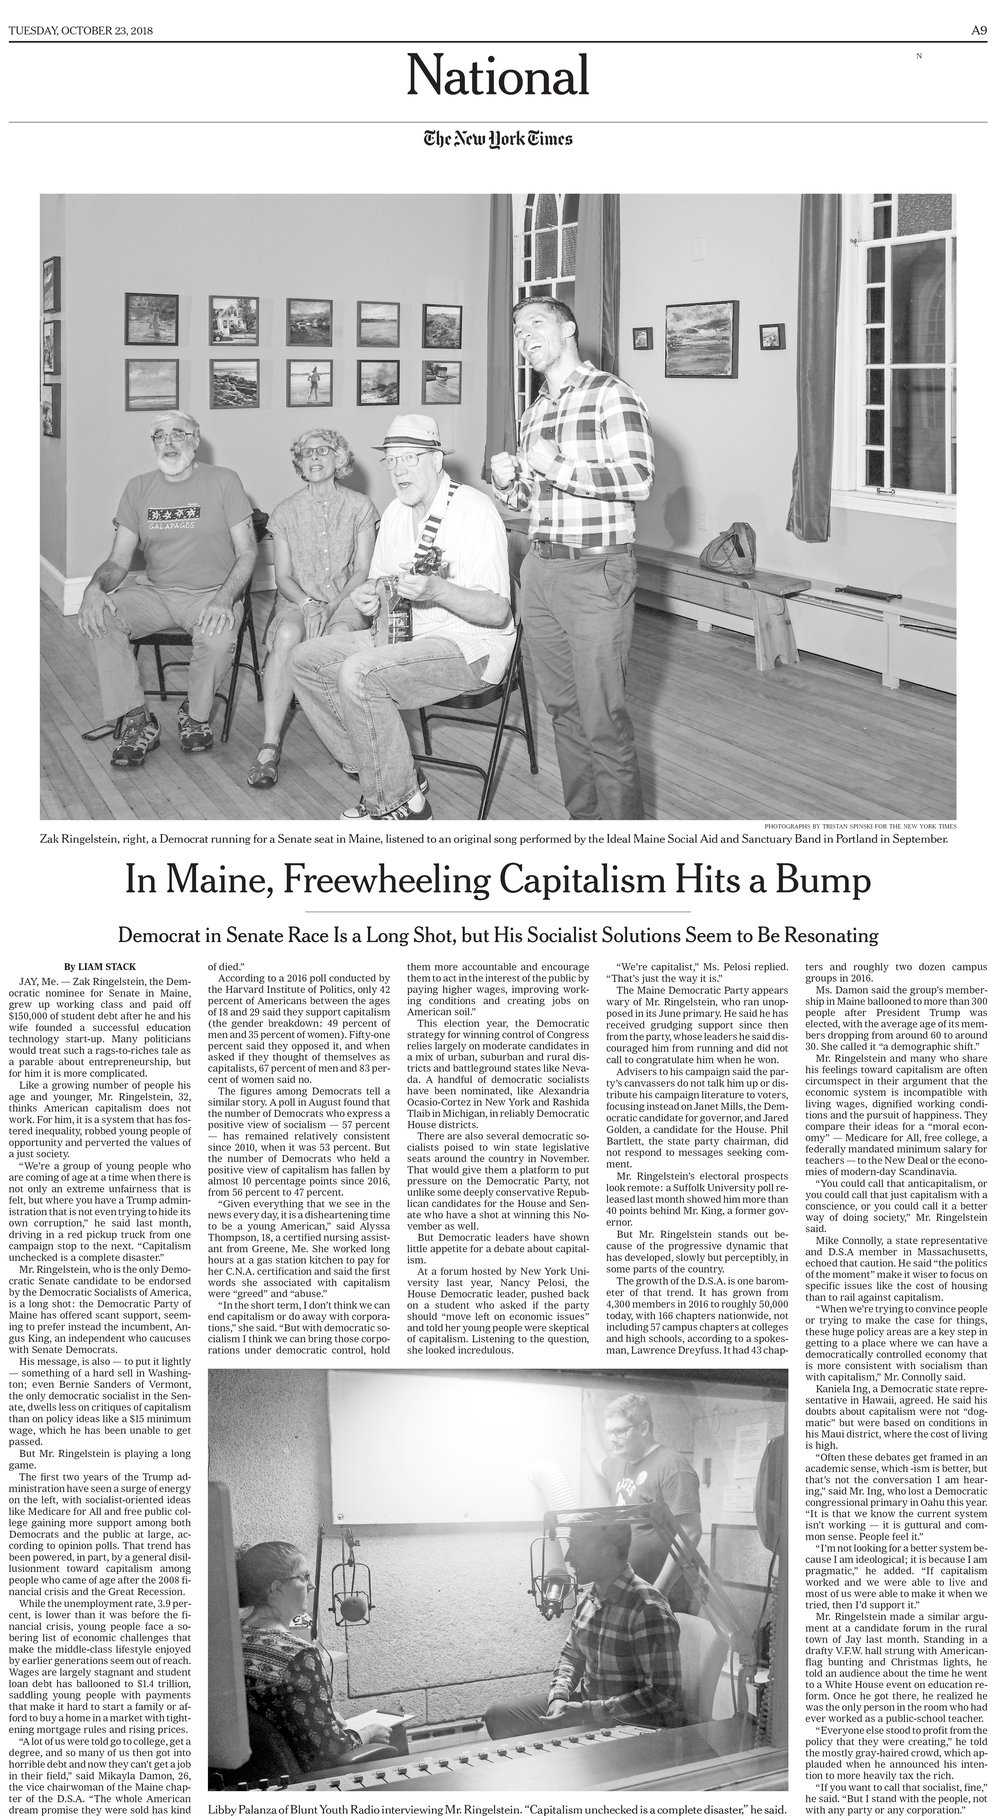 """""""In Maine, Freewheeling Capitalism Hits a Bump.""""     Photos:   Tristan Spinski .  Role:  Assignment, final select."""